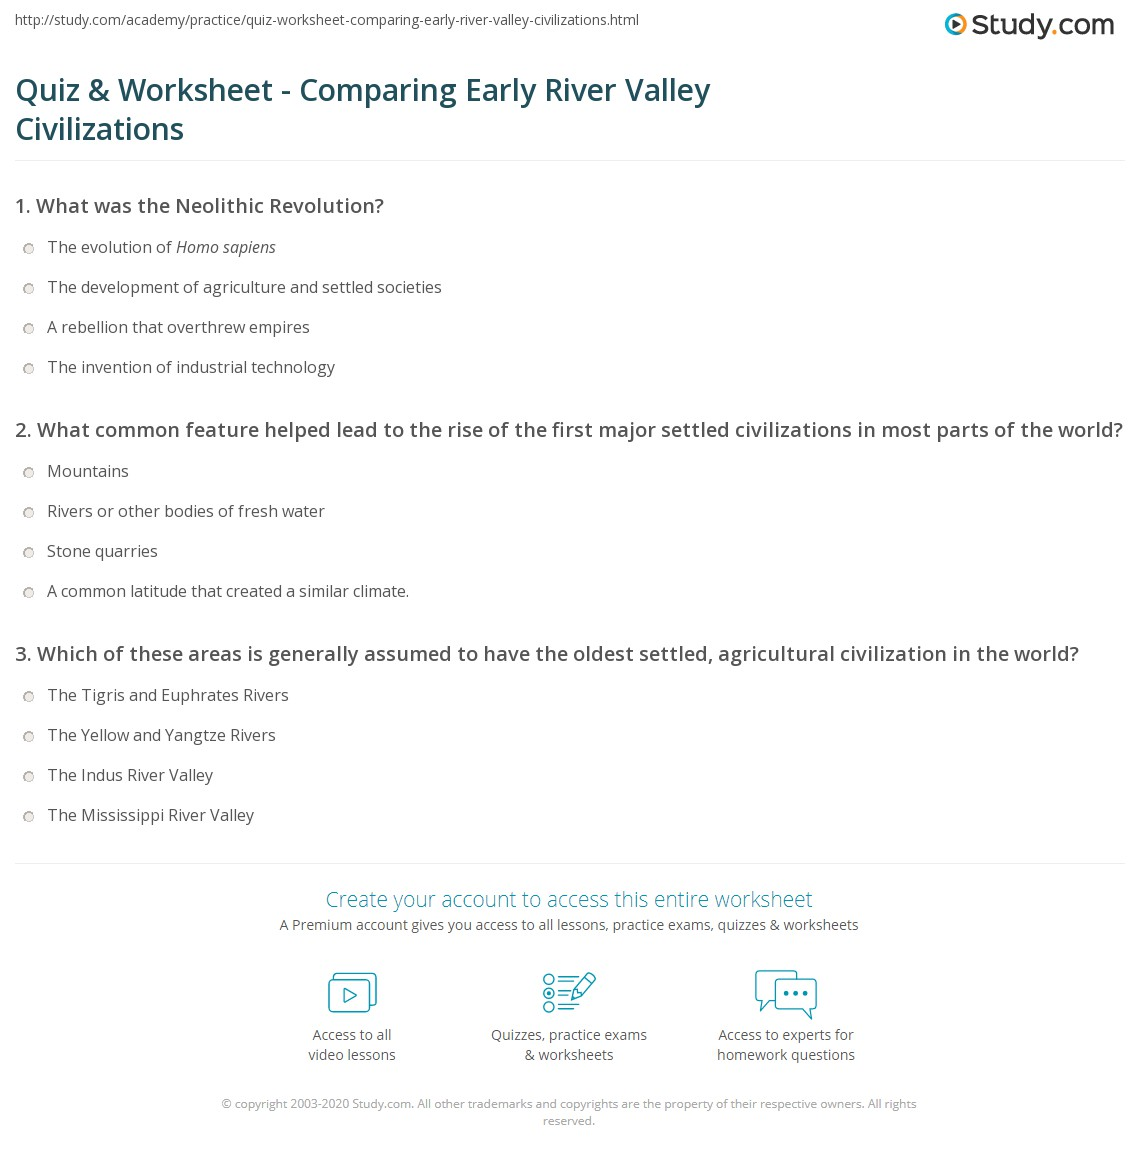 Quiz Worksheet Comparing Early River Valley Civilizations